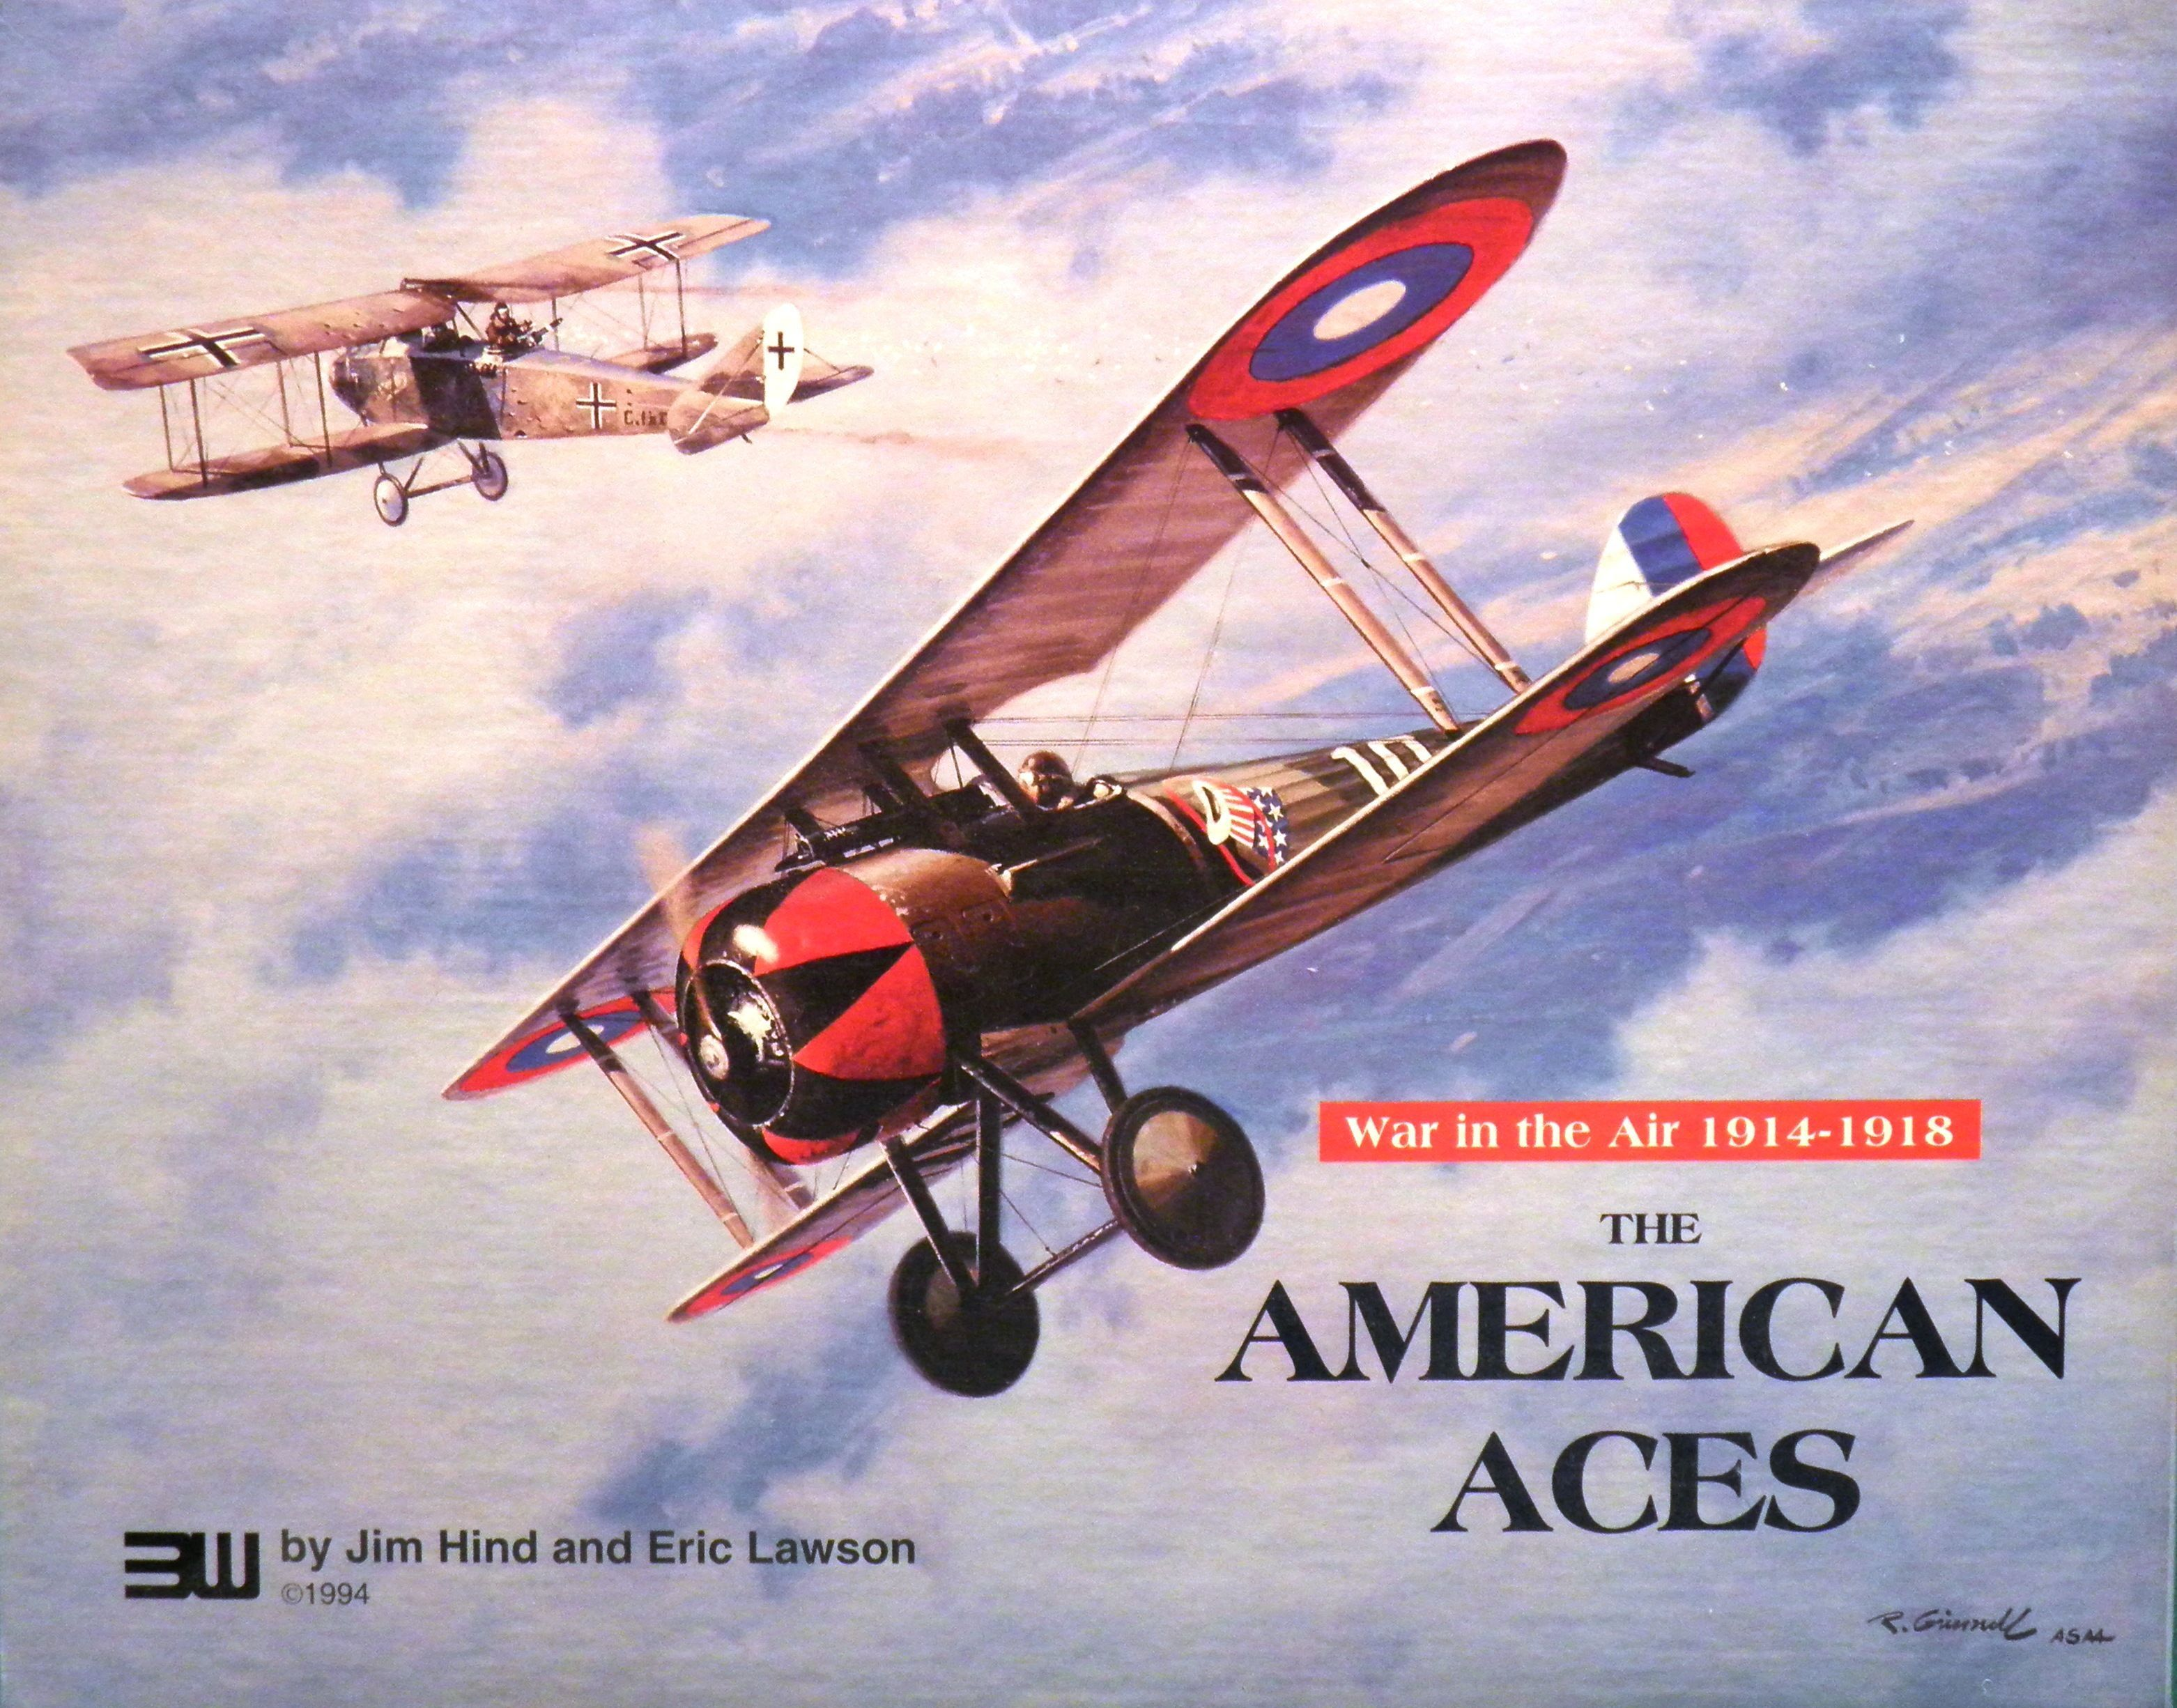 The American Aces